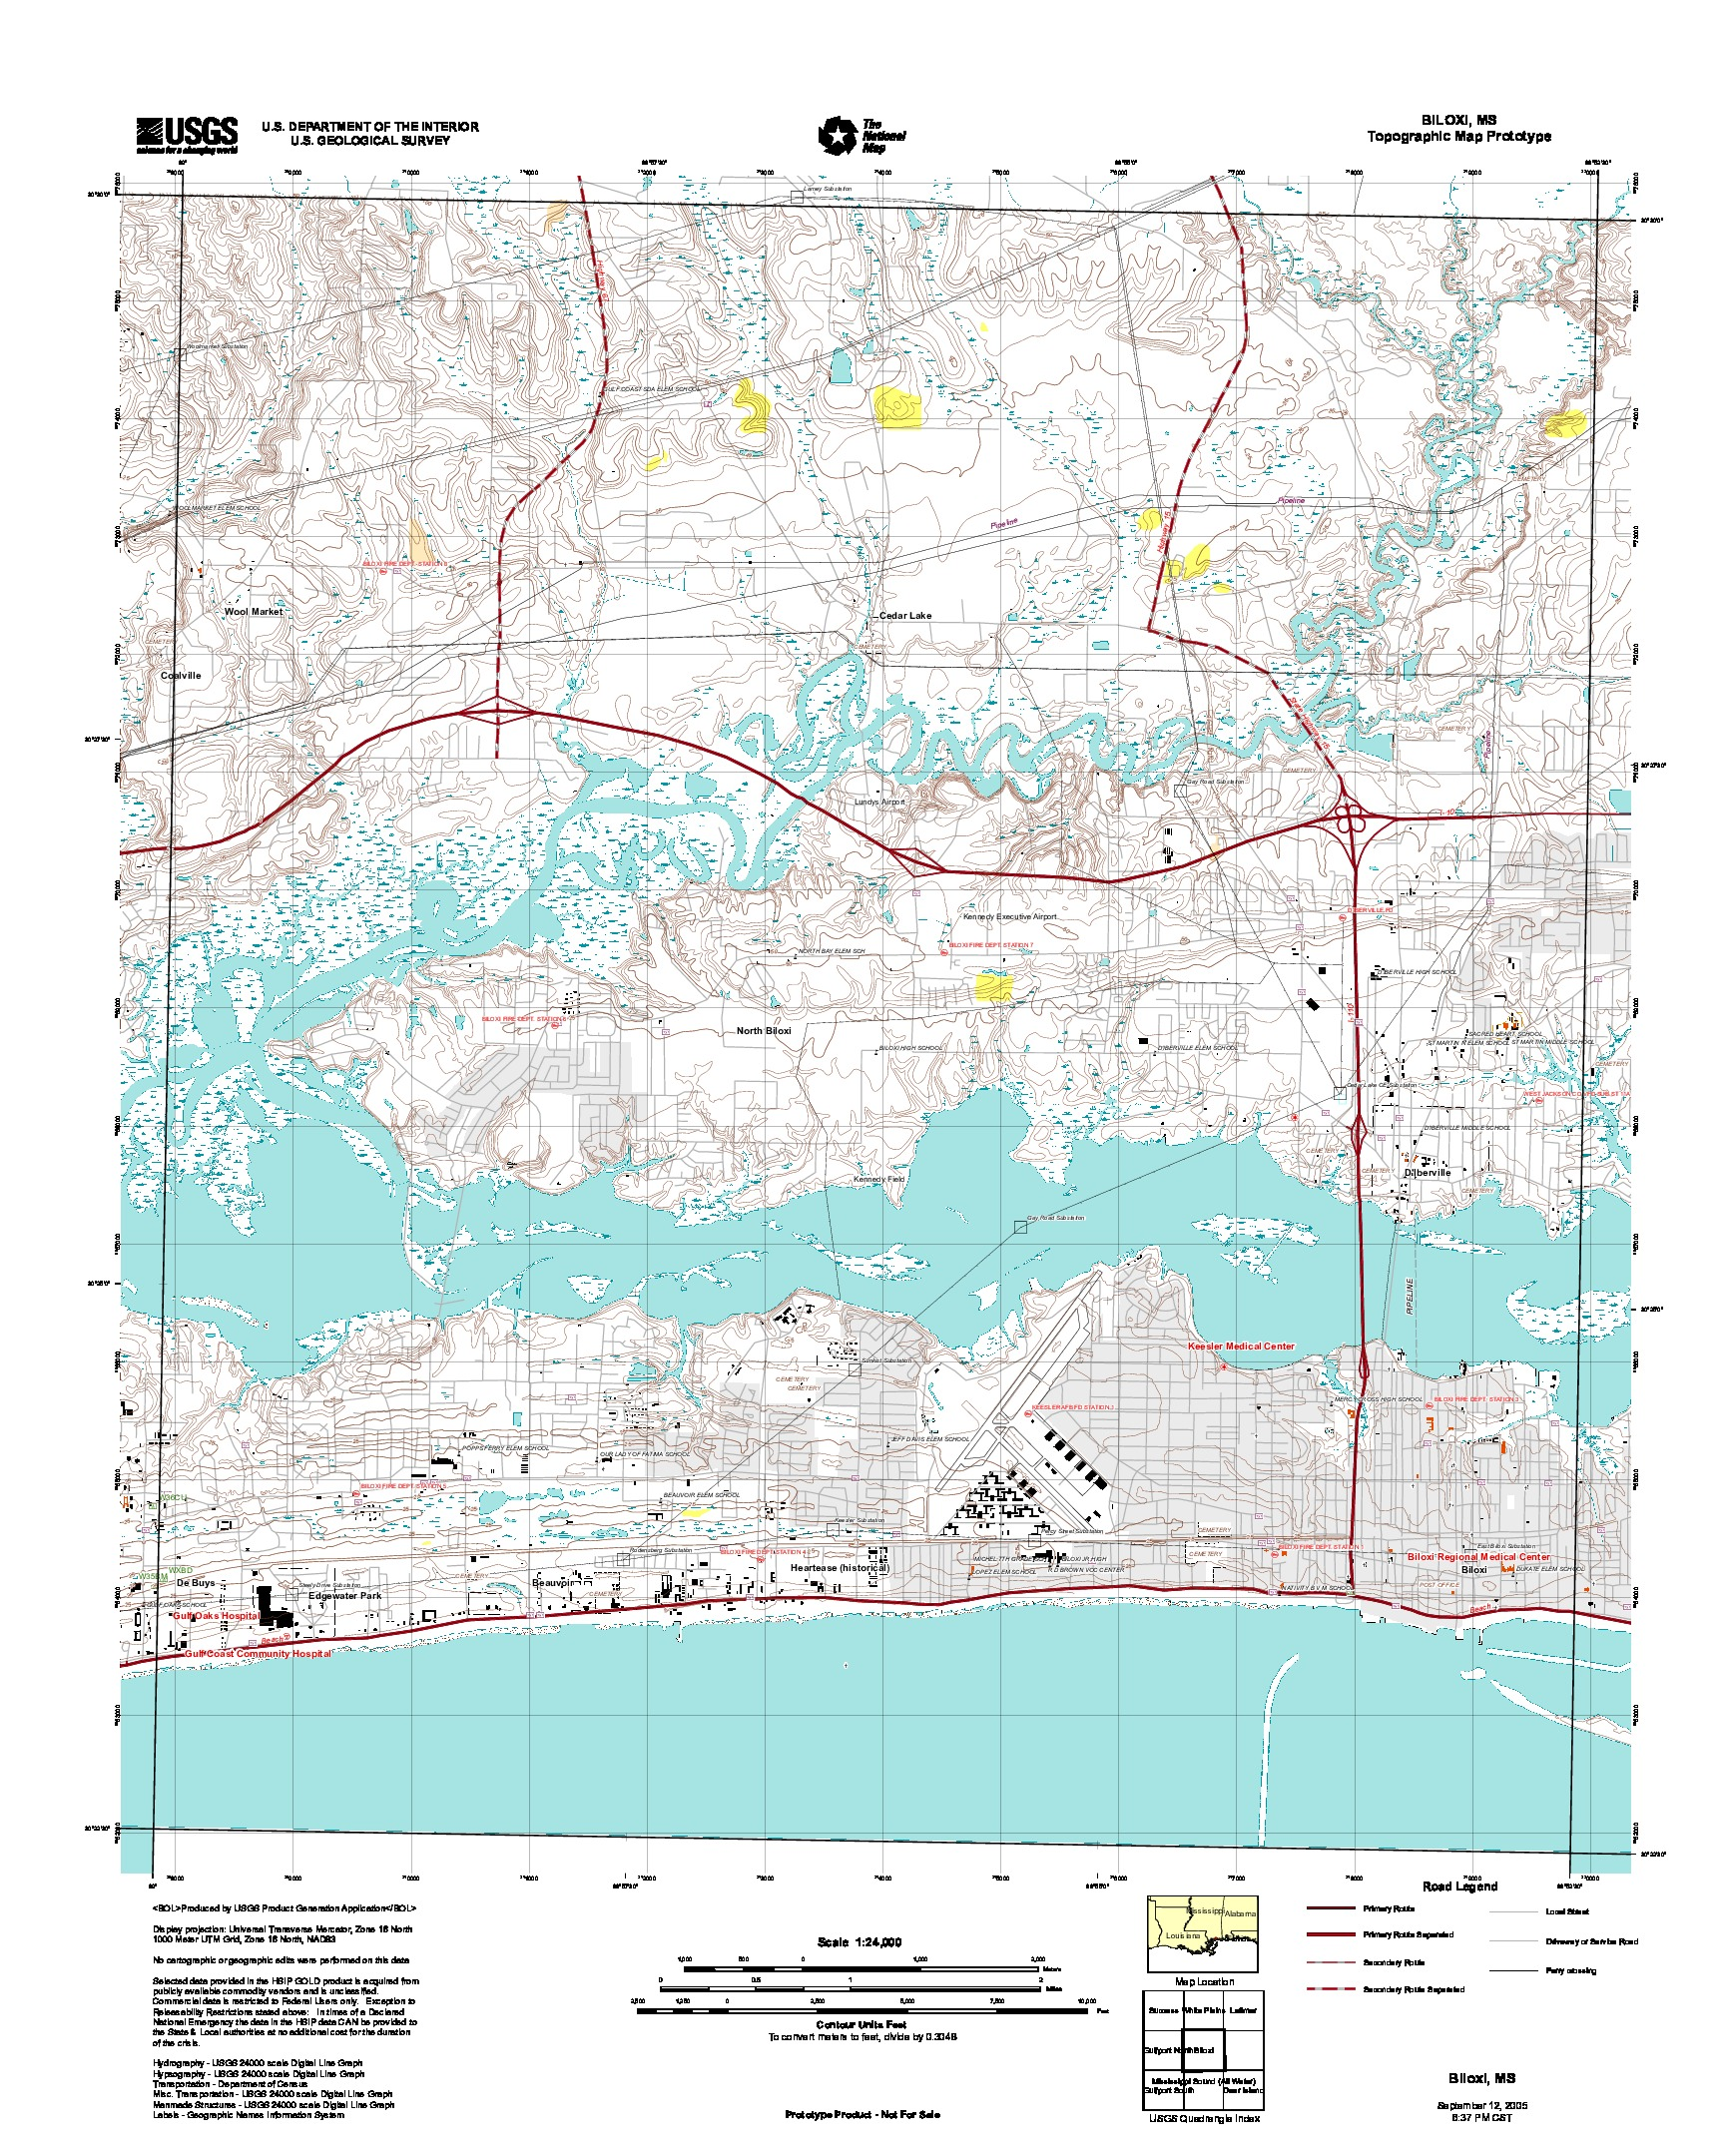 Biloxi, Topographic Map Prototype, Mississippi, United States, September 12, 2005